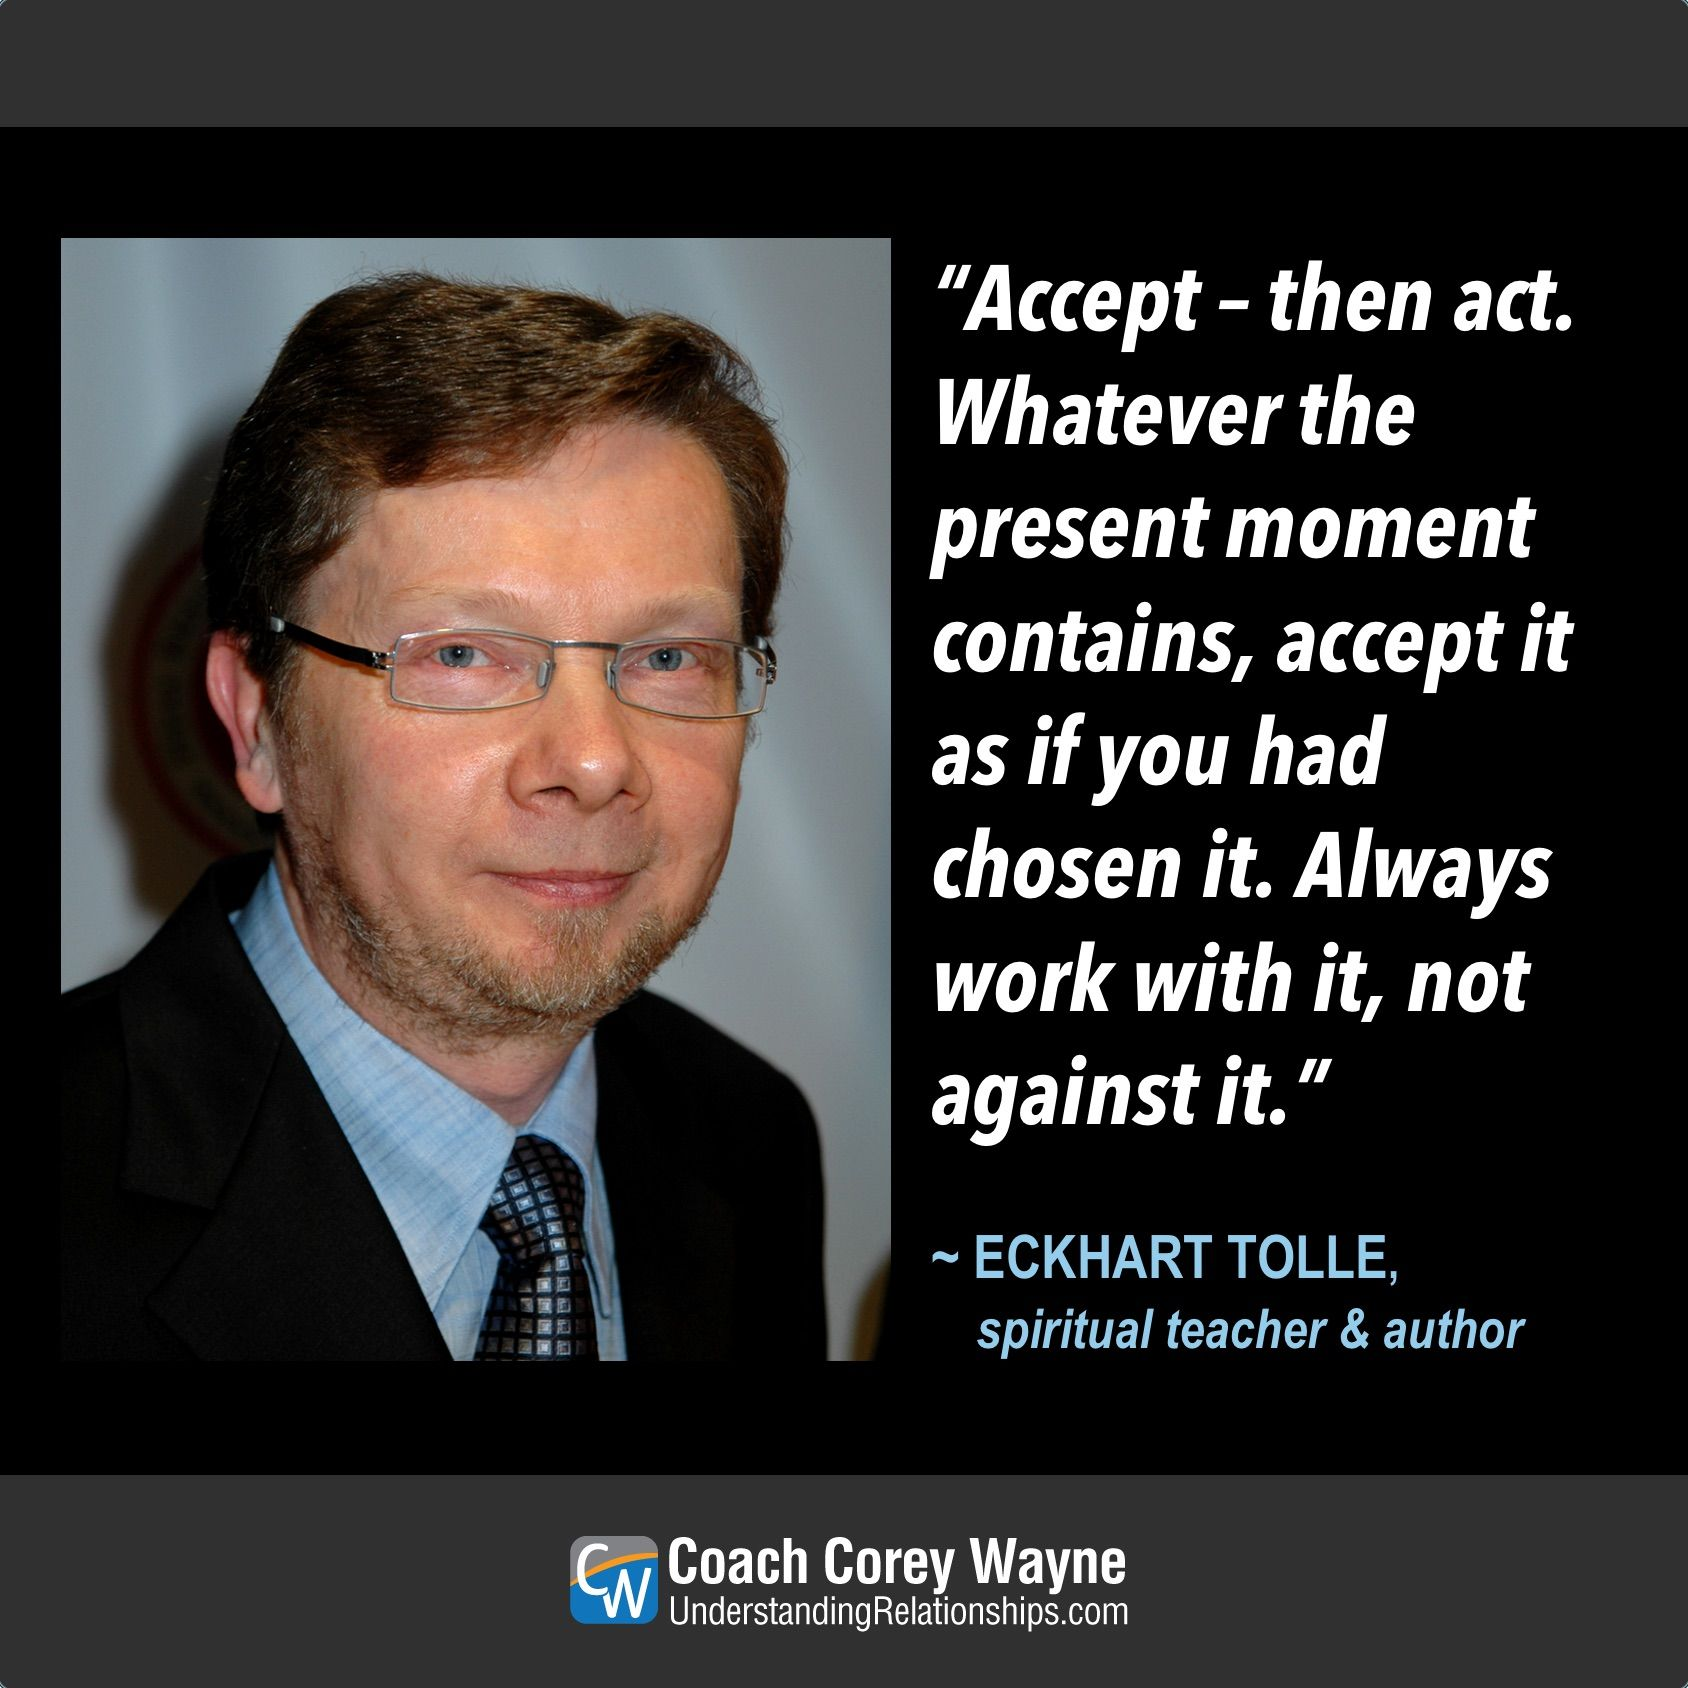 Eckharttolle Spirituality Thepowerofnow Mission Purpose Peace